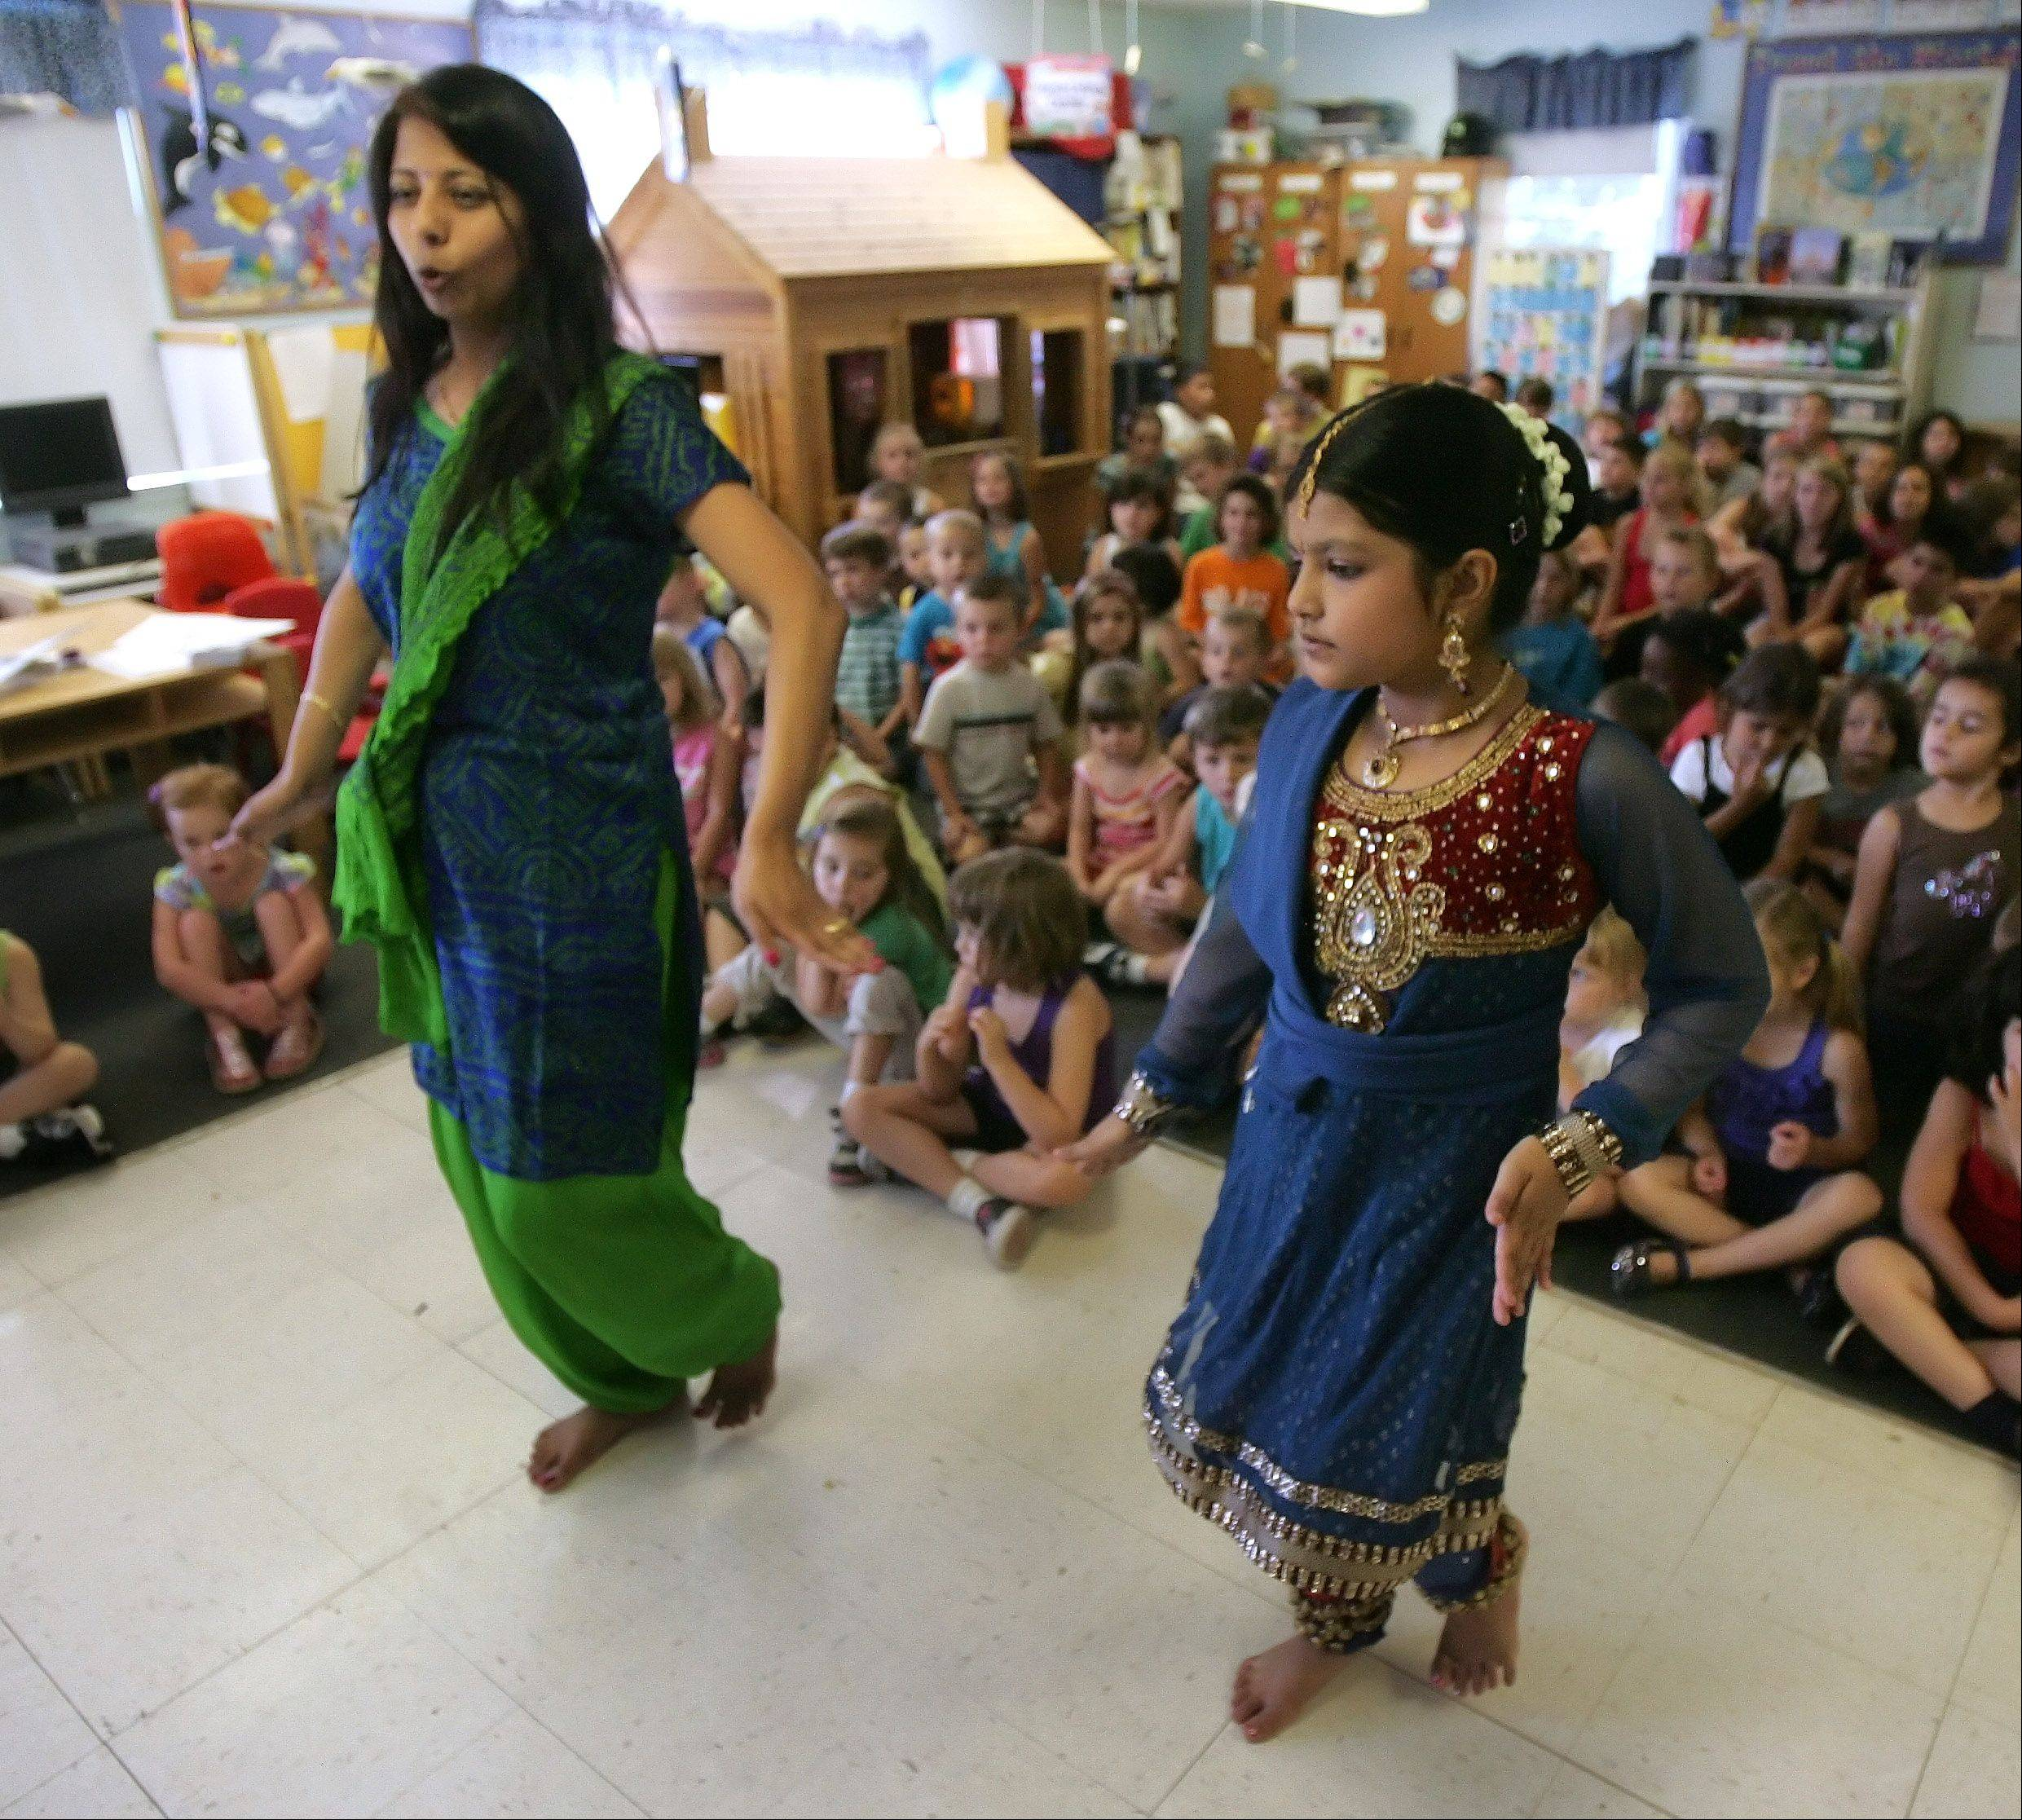 "Gauri Jog, of Gauri Jog Indian Dance School in Schaumburg, and her student, Ruchi Patel, 9, demonstrated different traditional Indian dances for students at the Lindenhurst Early Childhood Center Tuesday. Wearing traditional attire, Jog showed the students how to move during her visit that was part of the school's summer program '""Trip Around the World."""